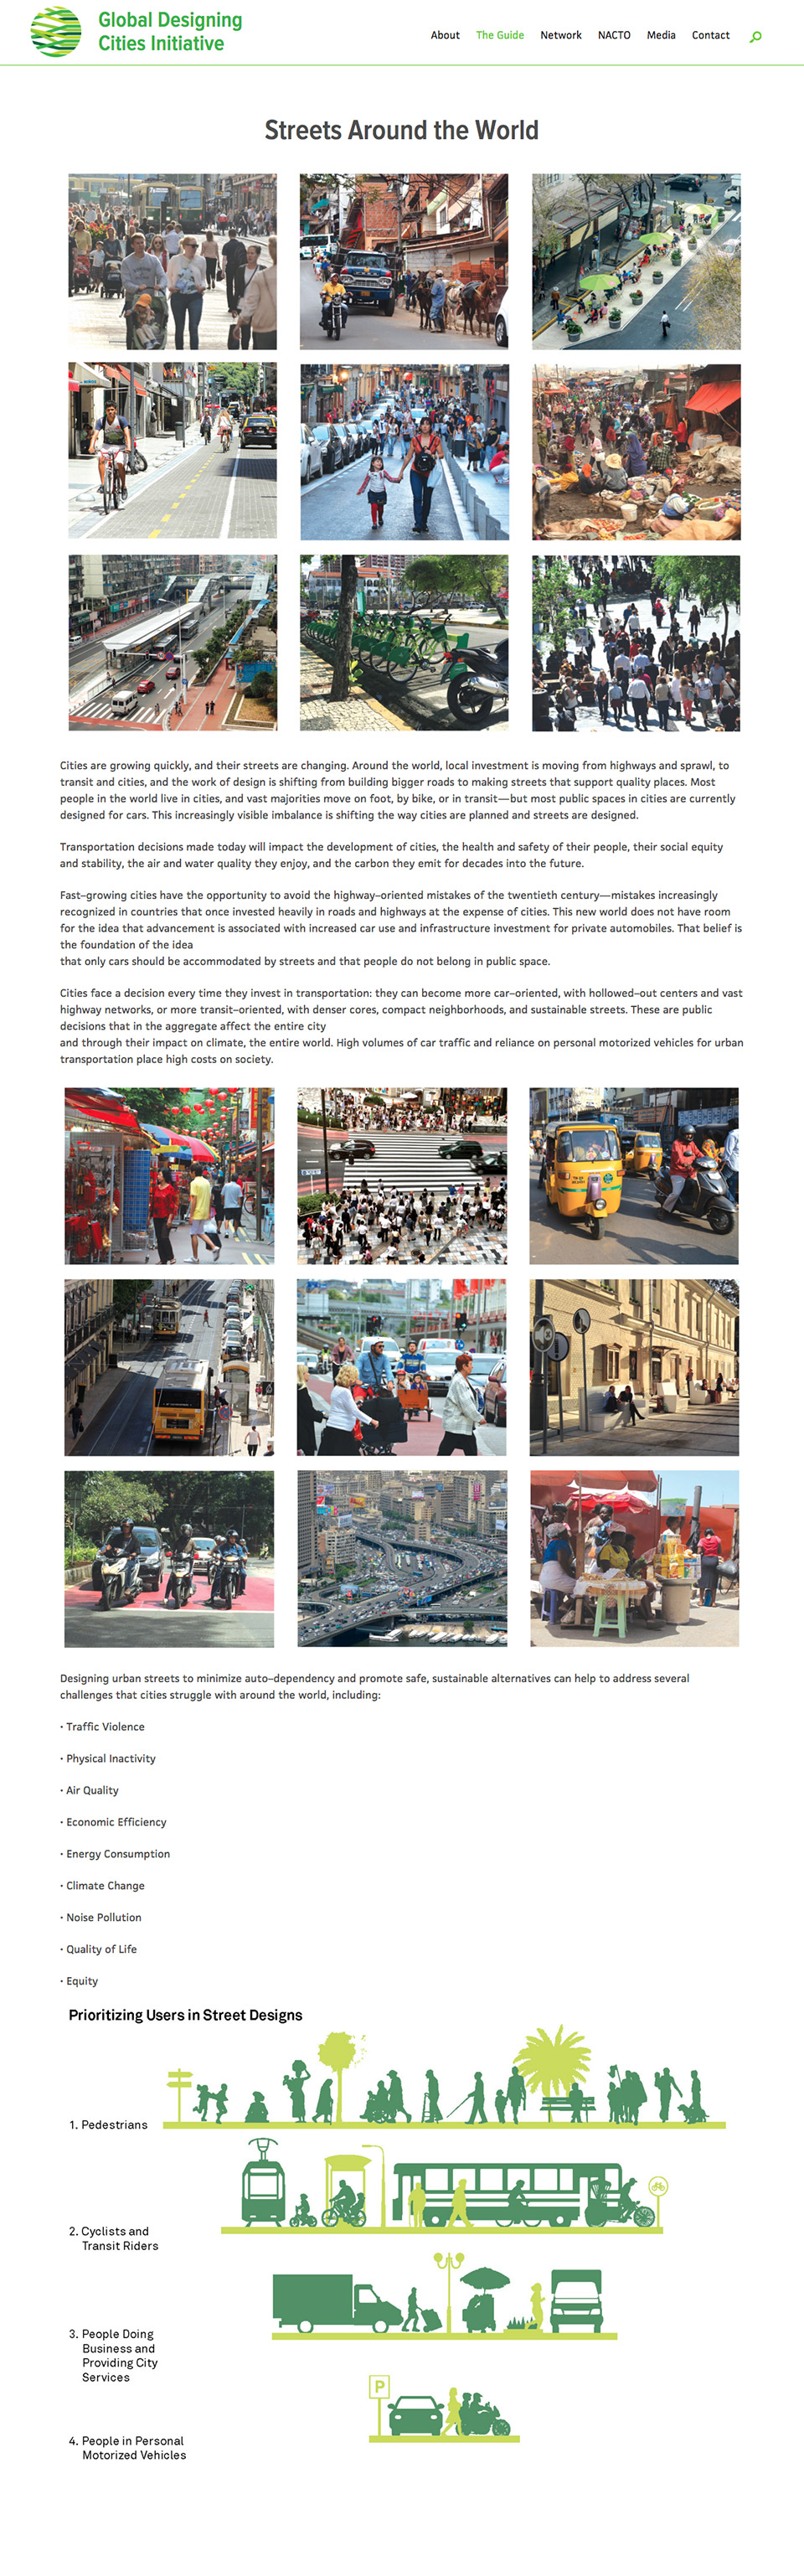 Global Designing Cities Initiative: Featured Guide Page